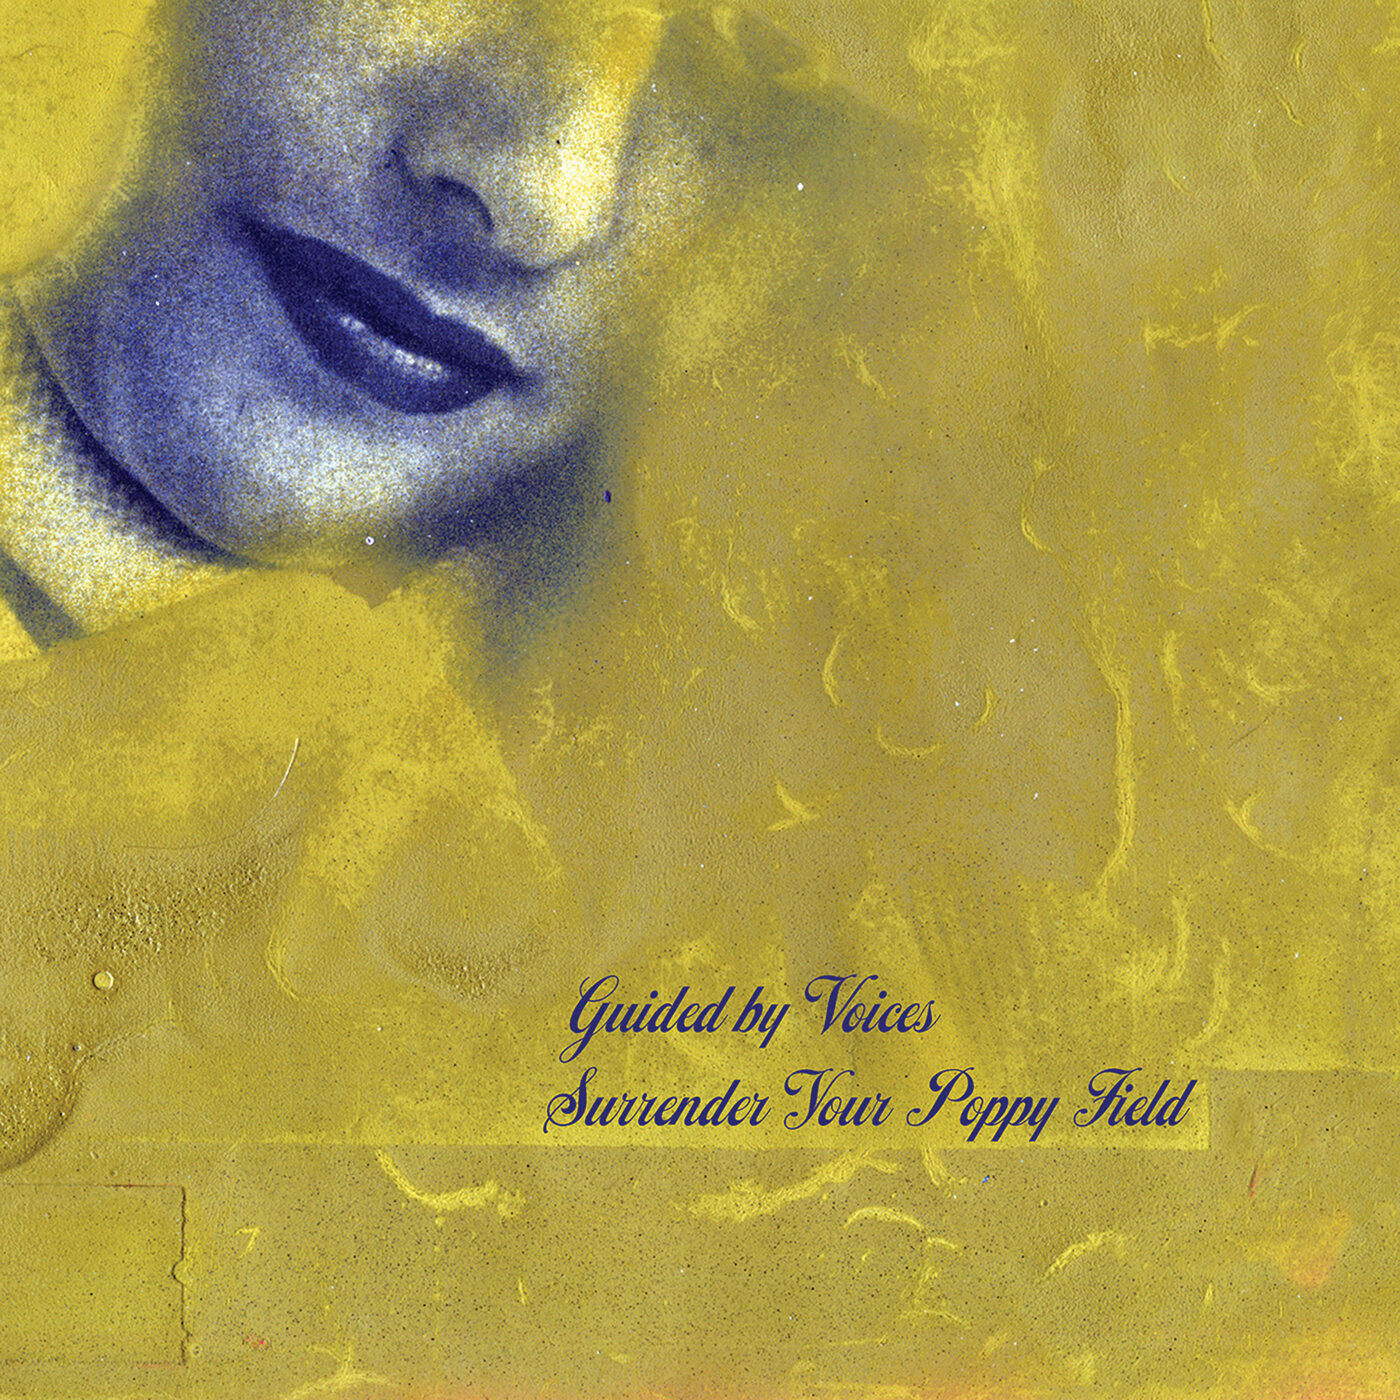 Guided by Voices Surrender your poppy field album cover artwork tickets tour